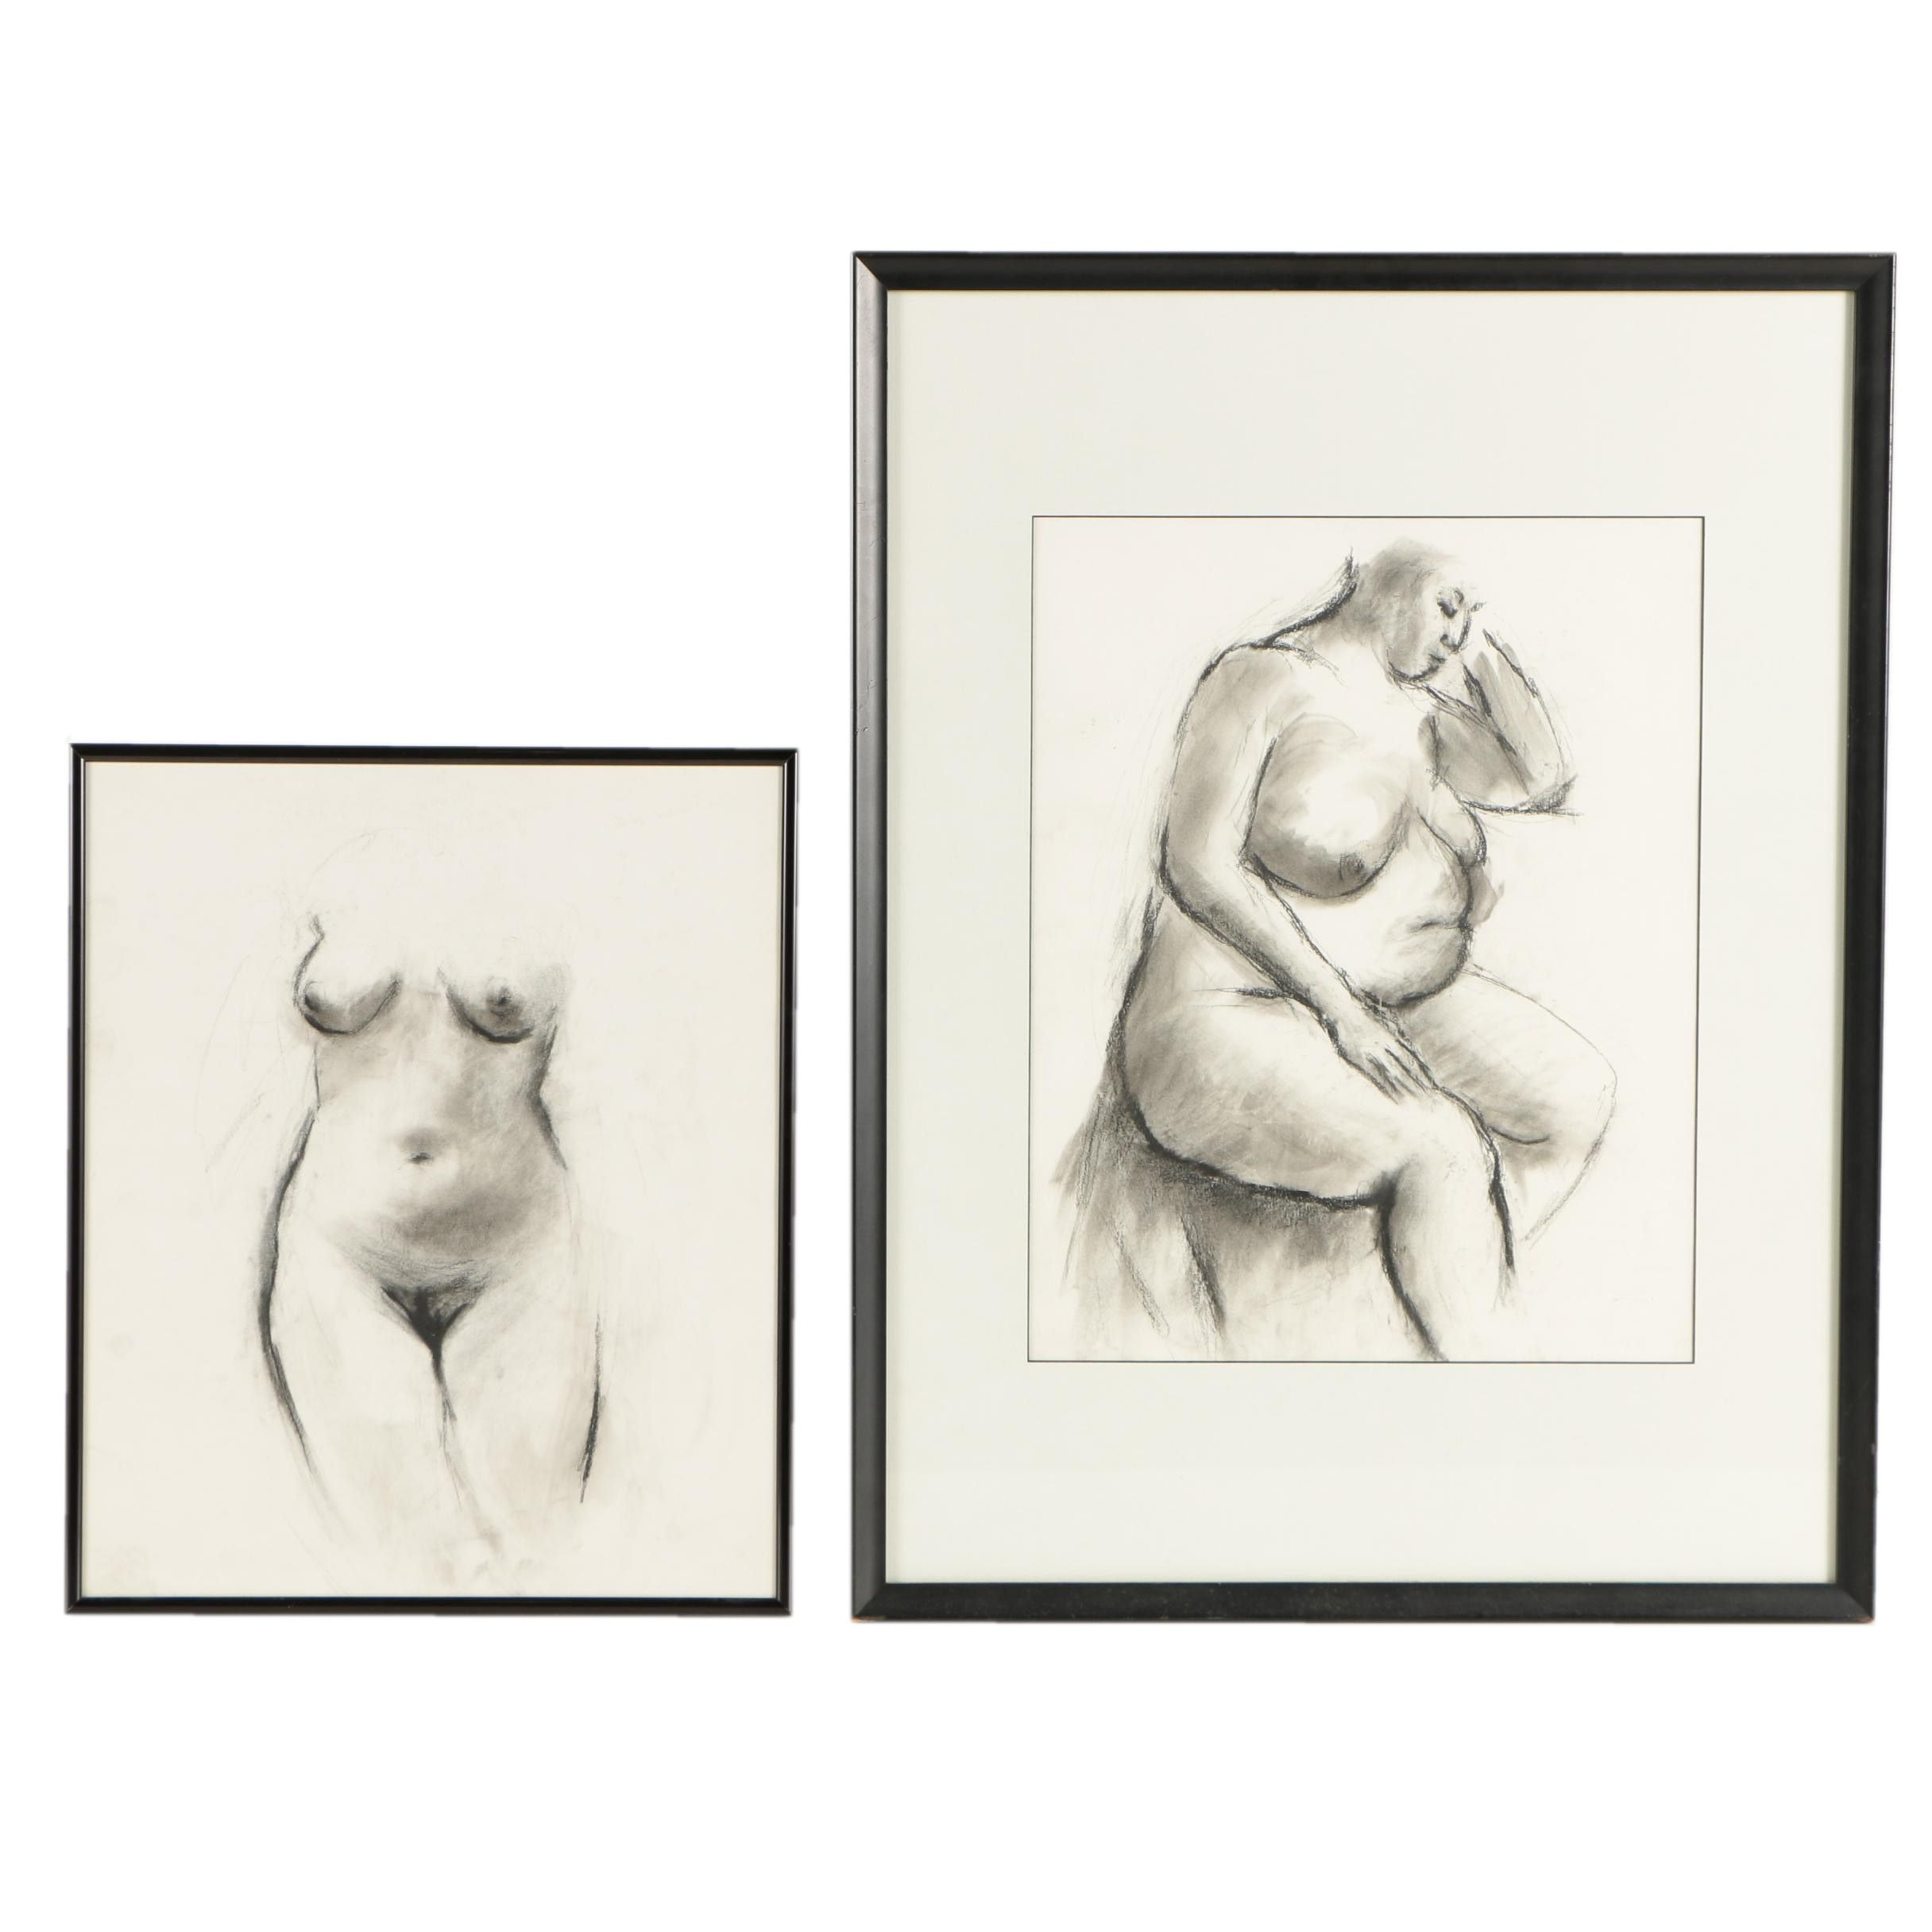 Charcoal Drawings on Paper of Nude Figure Studies